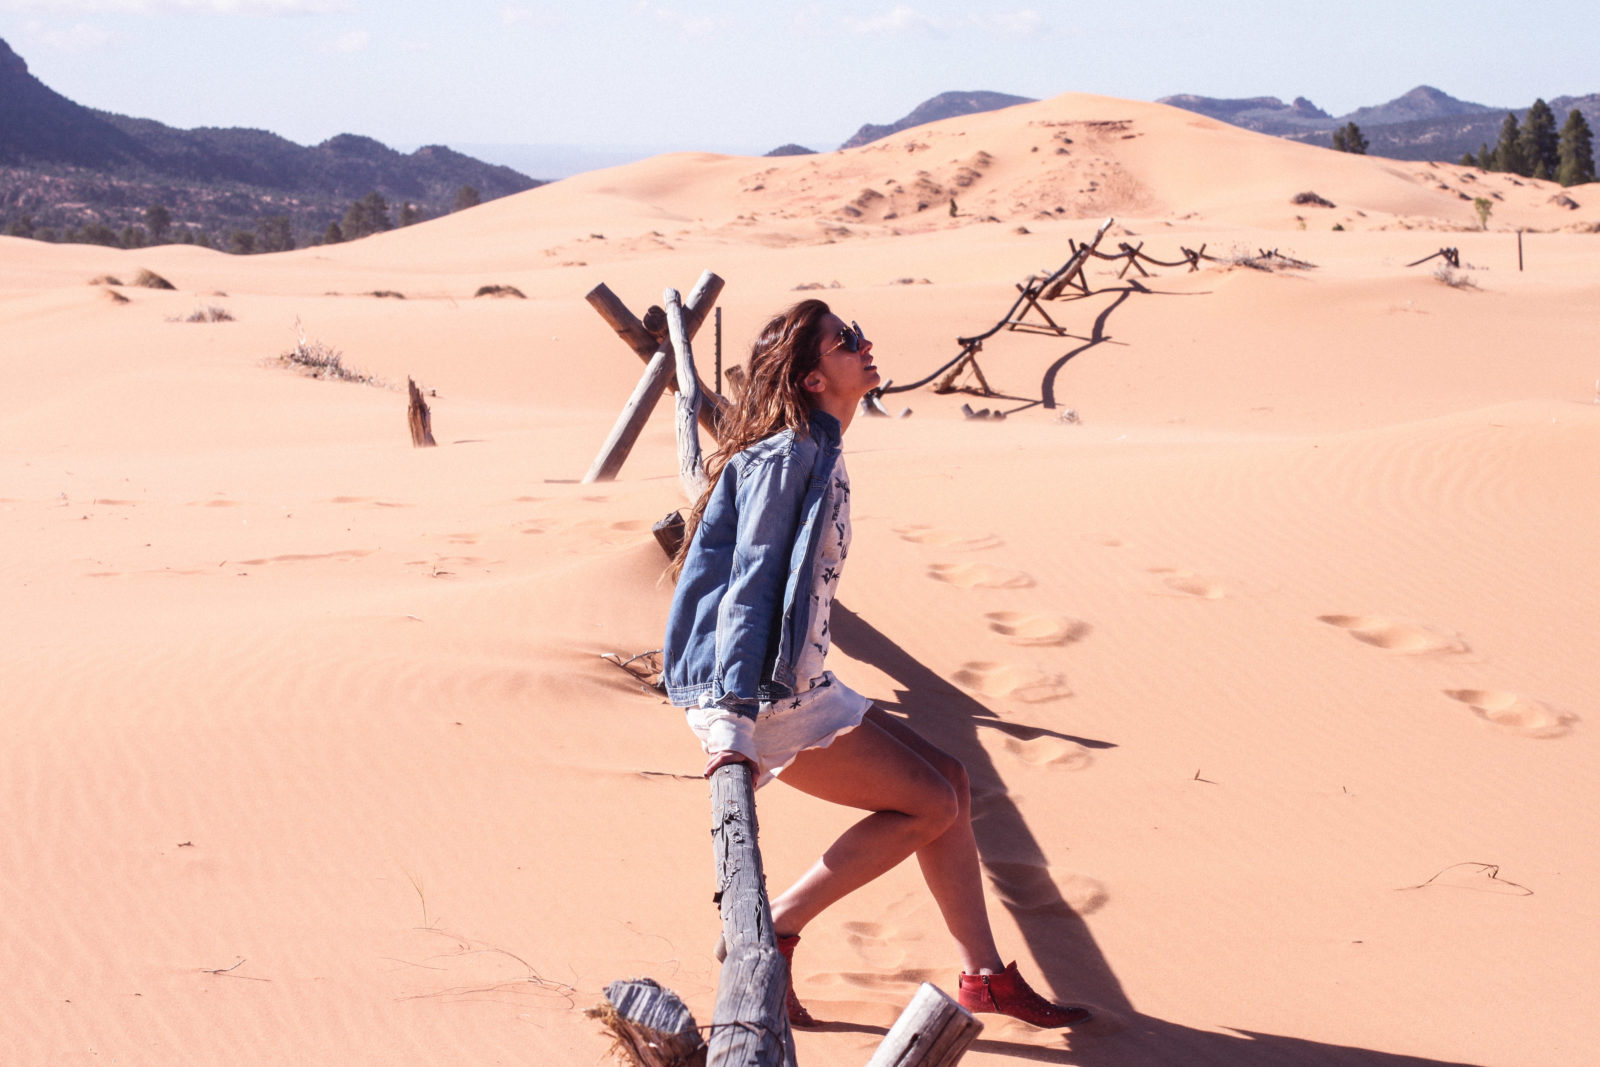 coral_pink_sand_dunes_kanab_utah_usa_roadtrip_trip_travel_donkeycool_route_backpack_red_boots-39